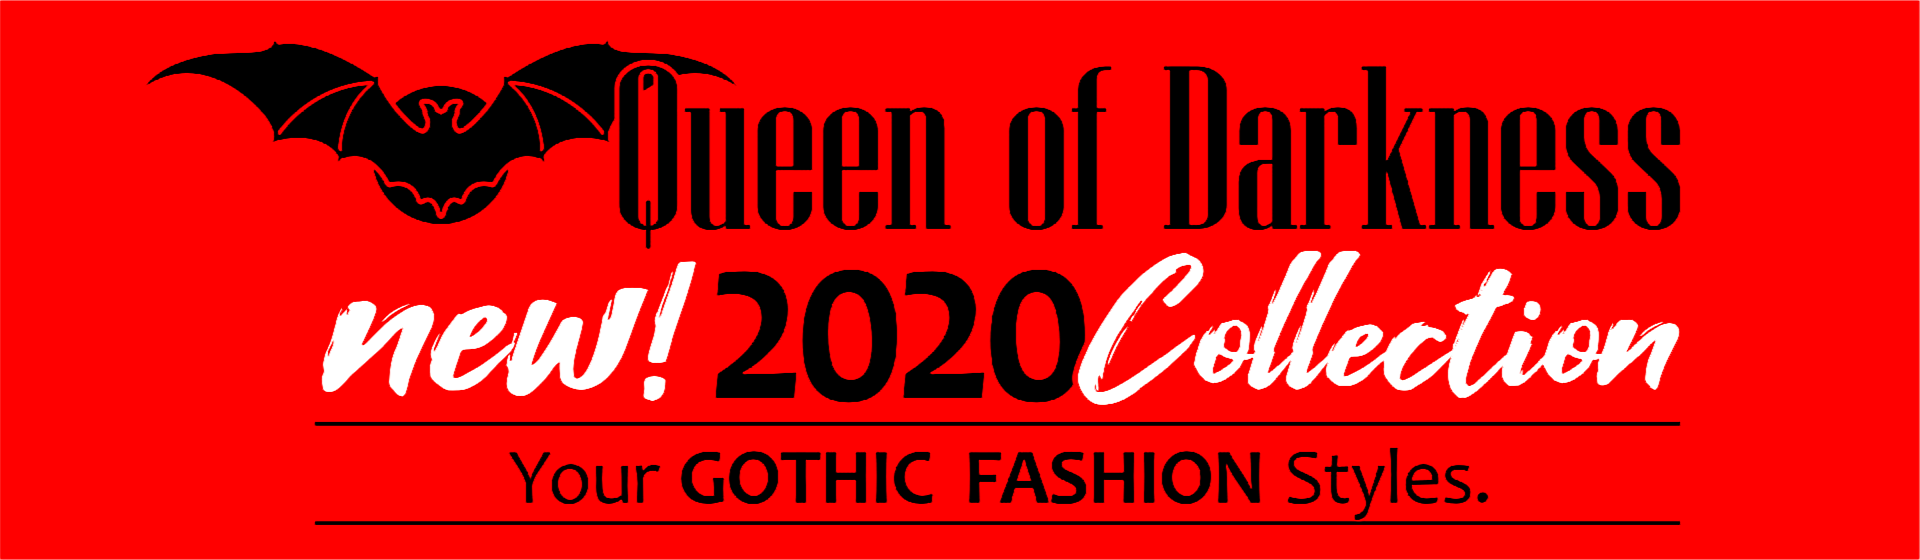 New GOTHIC Fashion COLLECTION 2020 by Queen of Darkness Gothic Fashion